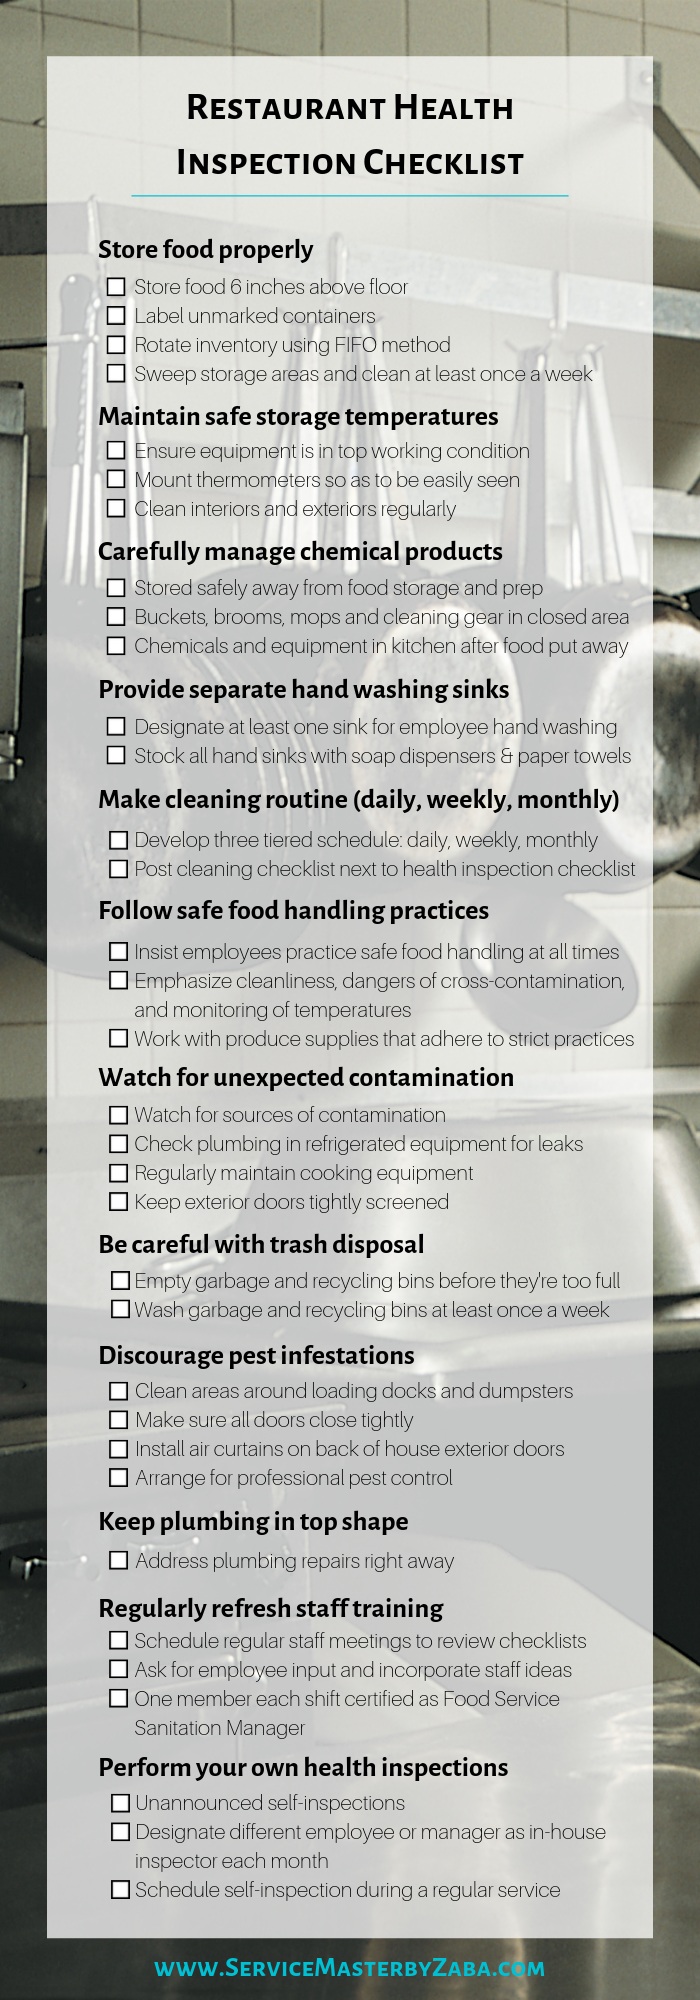 restaurant health inspection checklist